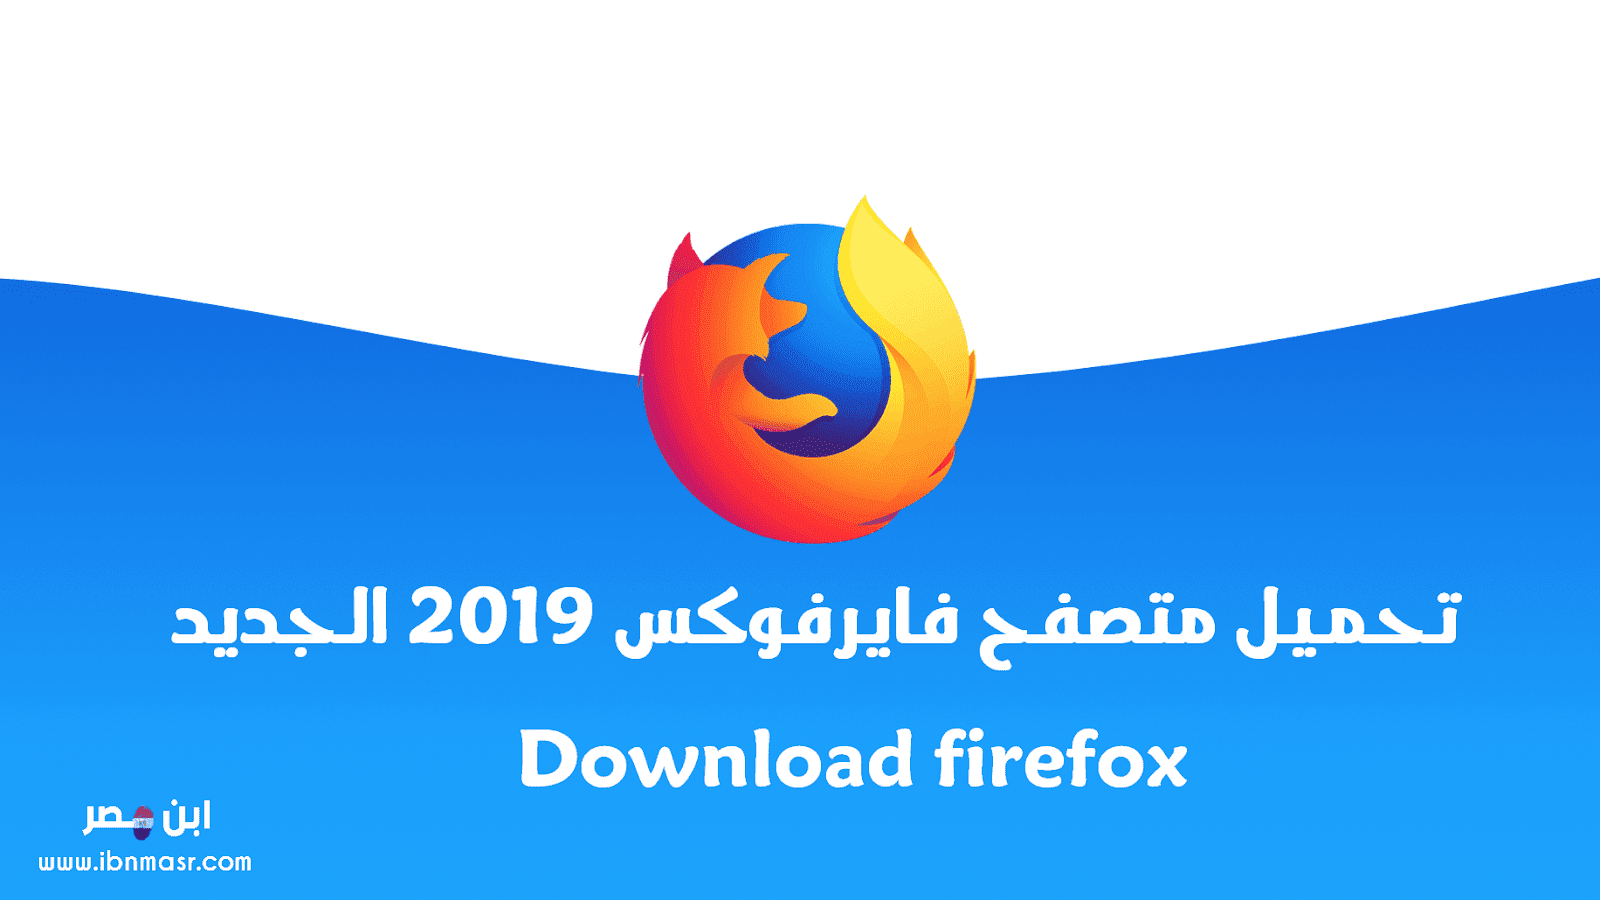 Download firefox 2019